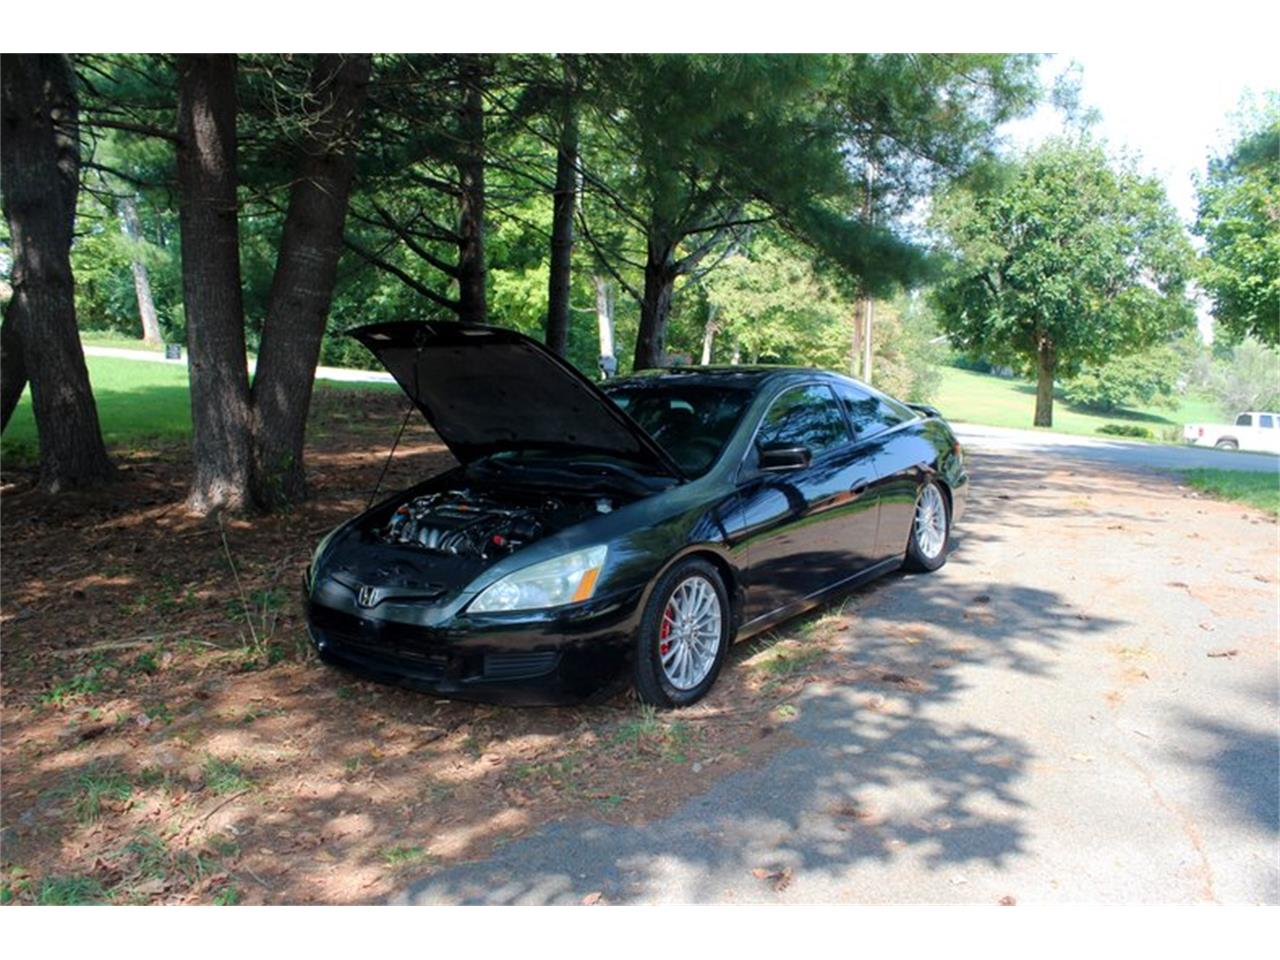 Large Picture of 2004 Honda Accord located in Tennessee - $5,995.00 Offered by Smoky Mountain Traders - OH0M